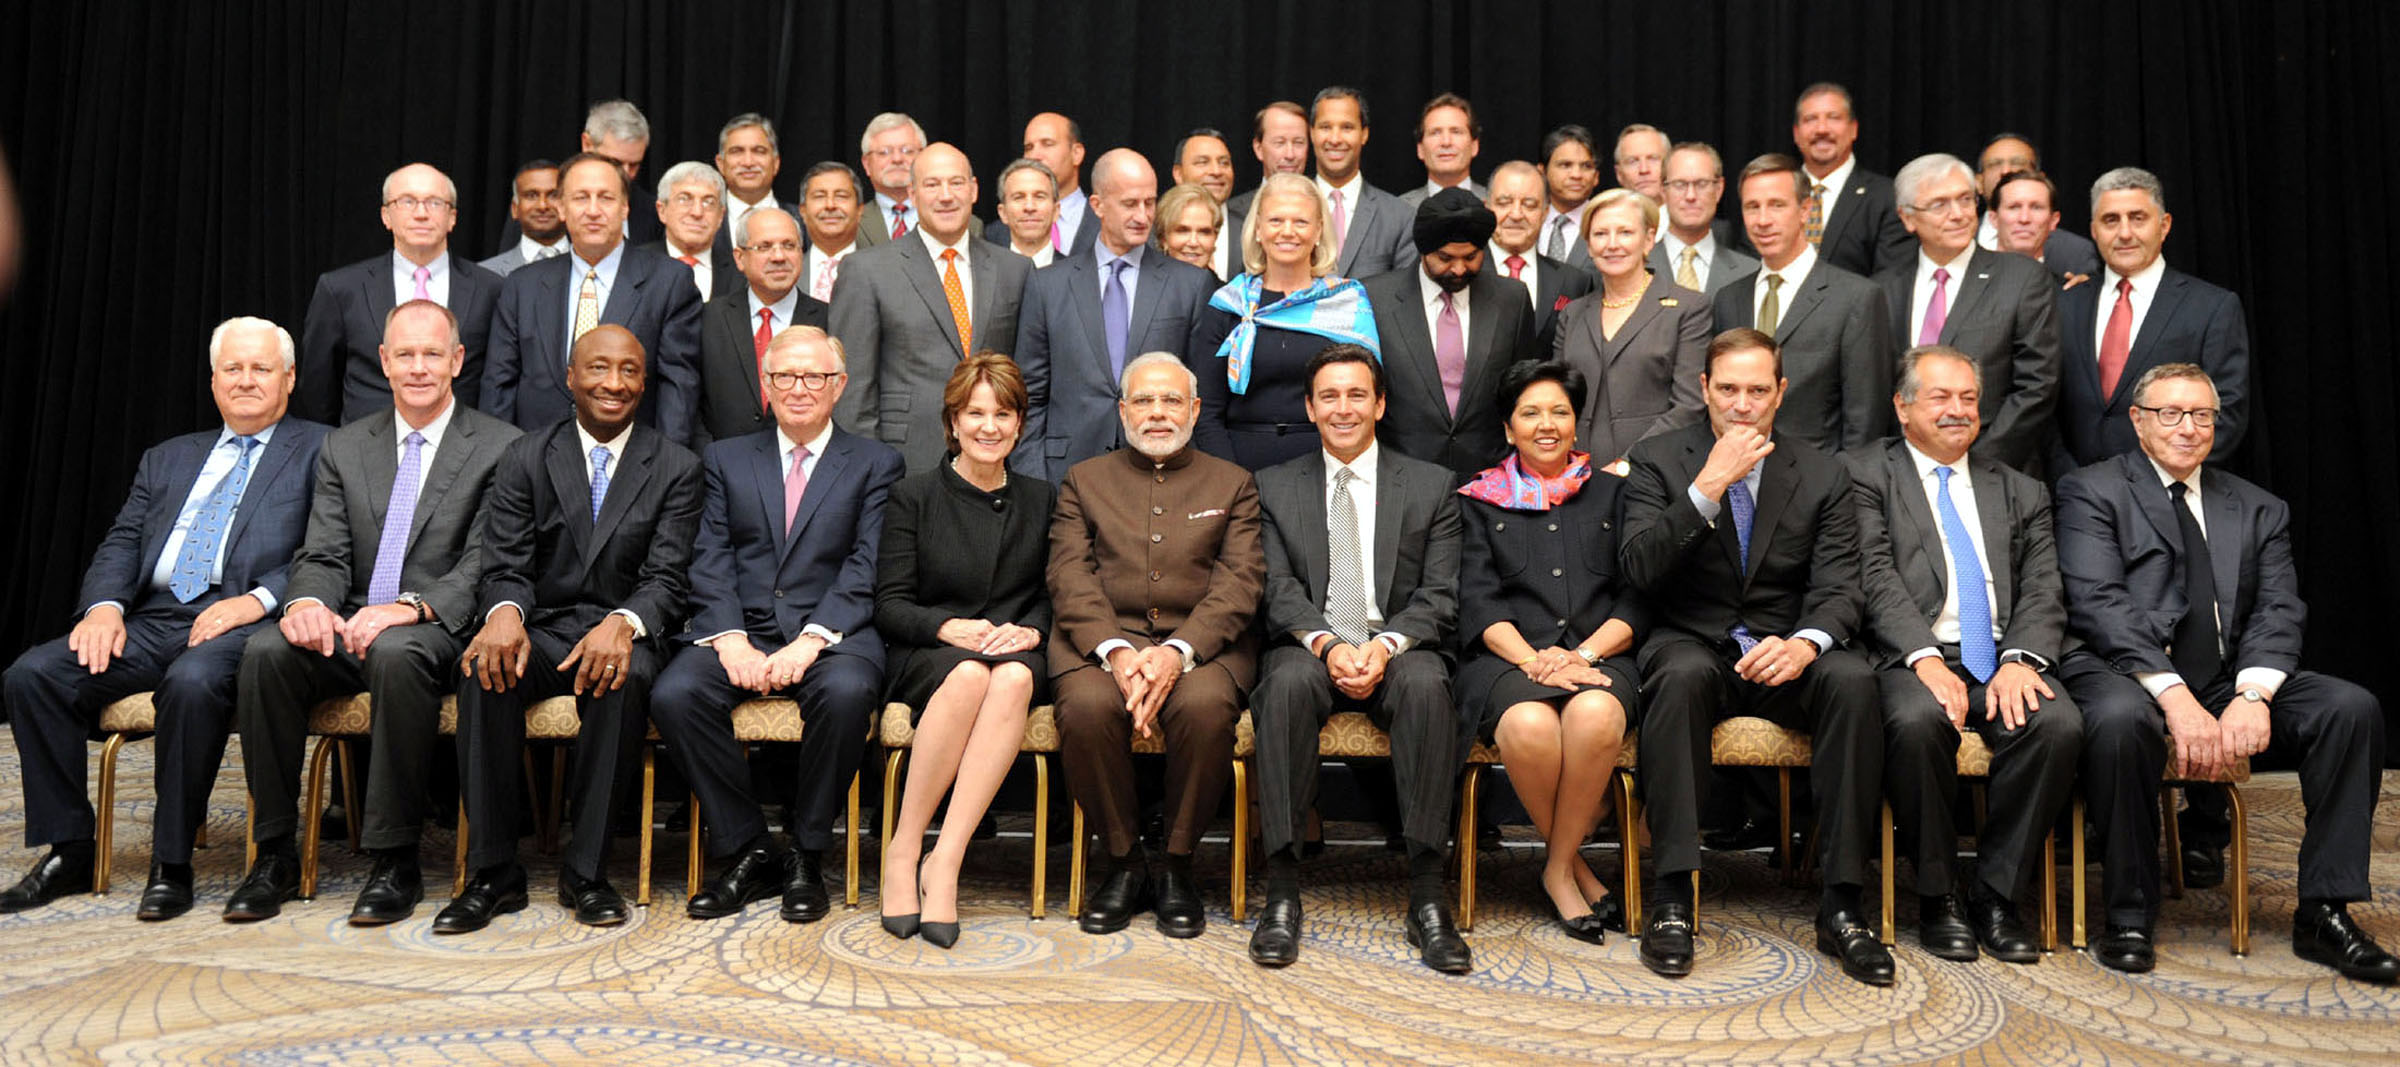 Prime Minister Narendra Modi in a group photograph with the leading Fortune 500 CEOs, at a special event, in New York on Thursday. (UNI)